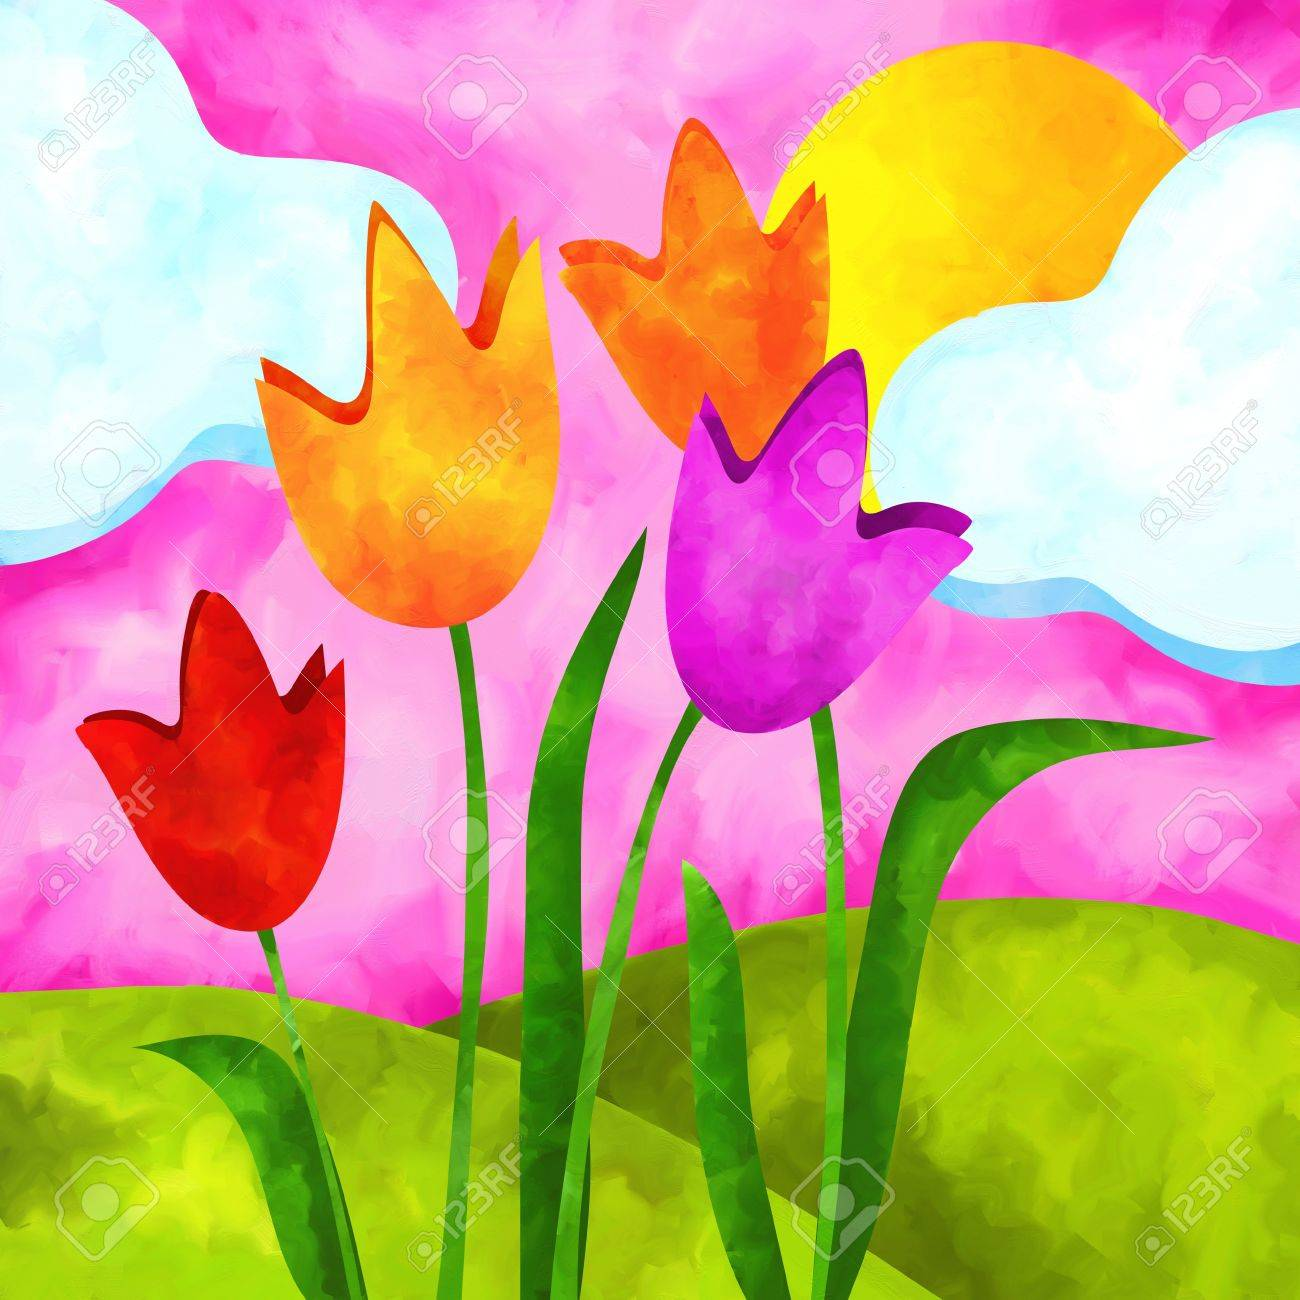 abstract background with tulips and sun Stock Photo - 14523993